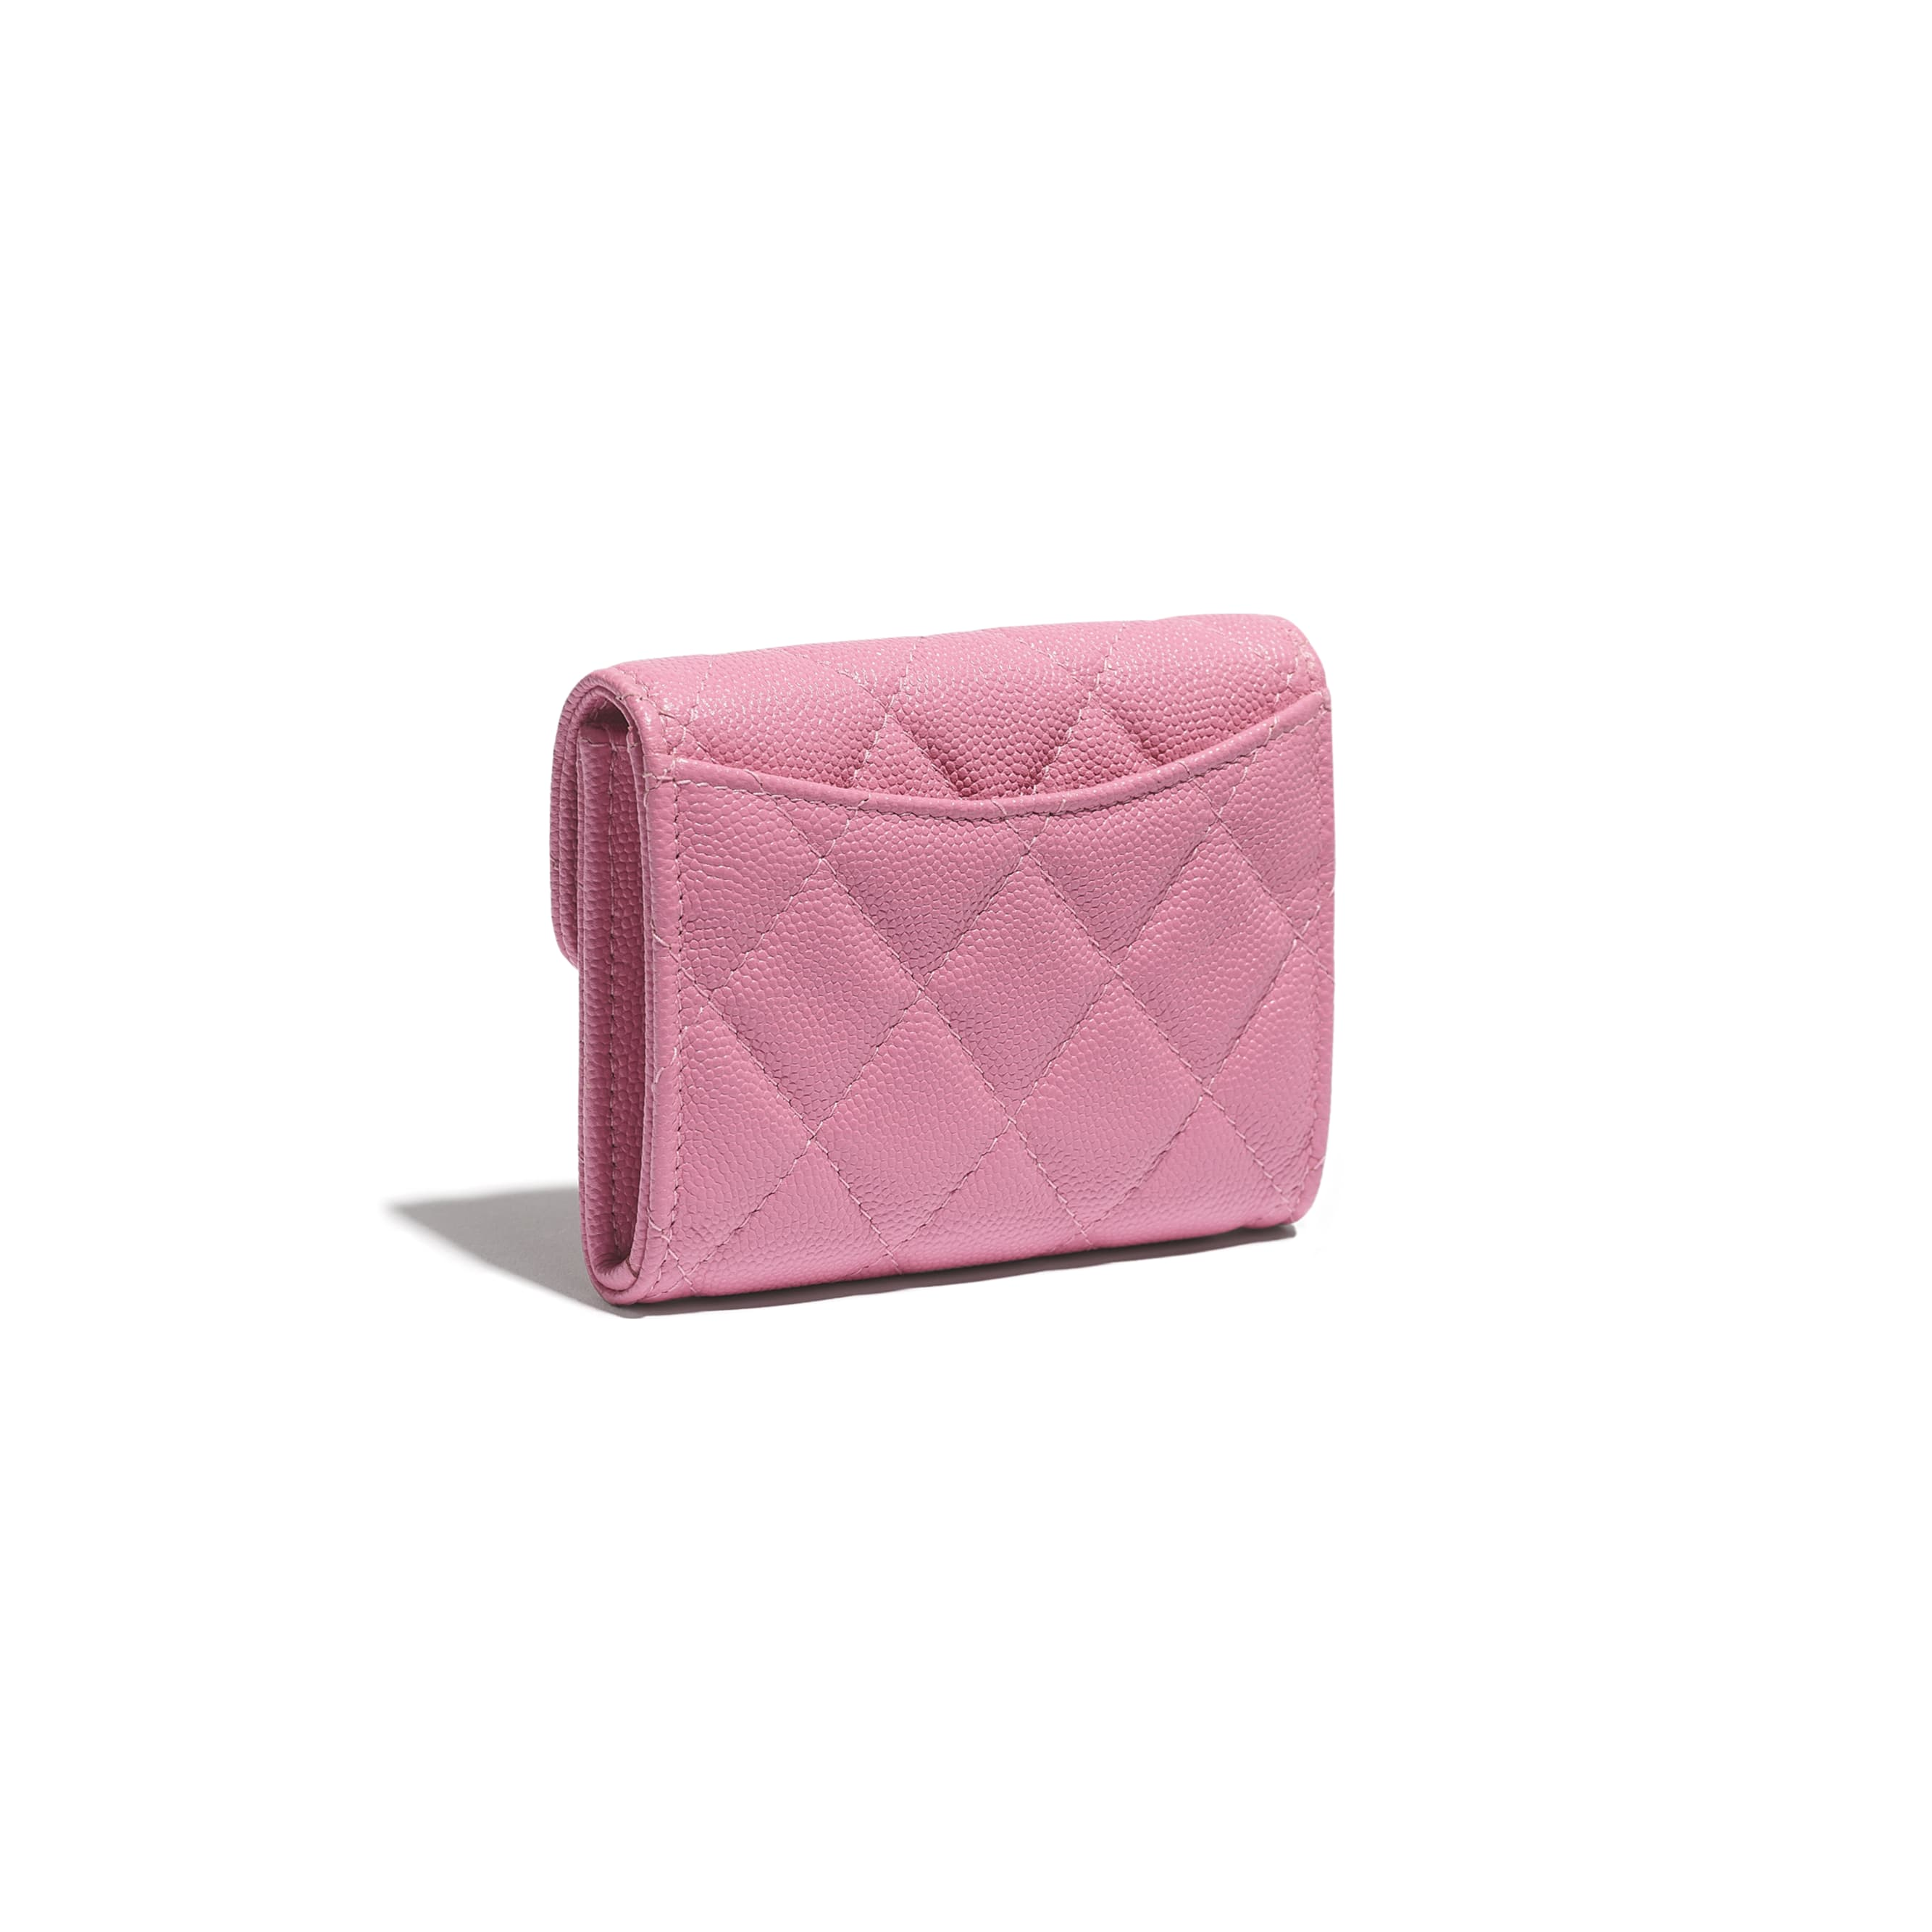 Classic Flap Coin Purse - Pink - Grained Calfskin & Gold-Tone Metal - CHANEL - Extra view - see standard sized version